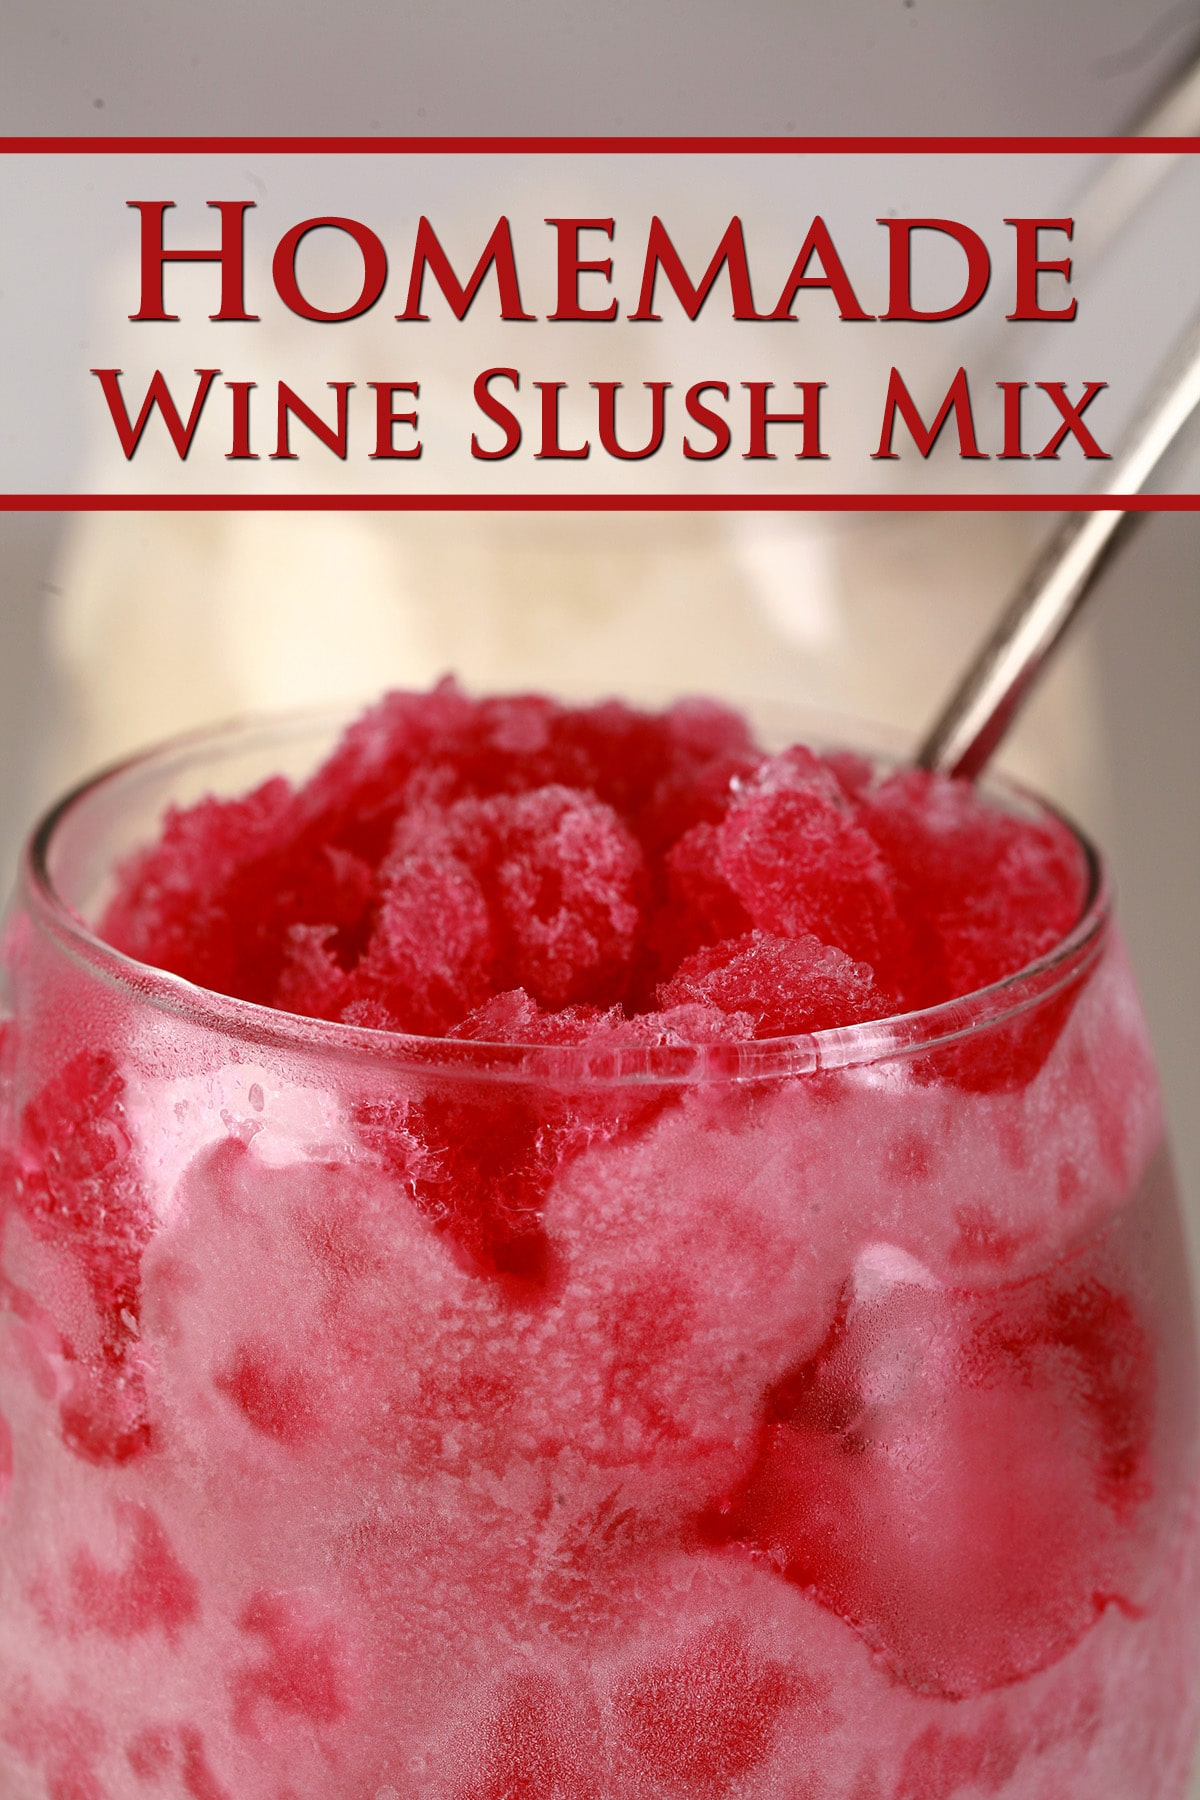 Two frosty wine glasses with wine slush in them - one is made with red wine, the other with white. Red text overlay says Homemade Wine Slush Mix.